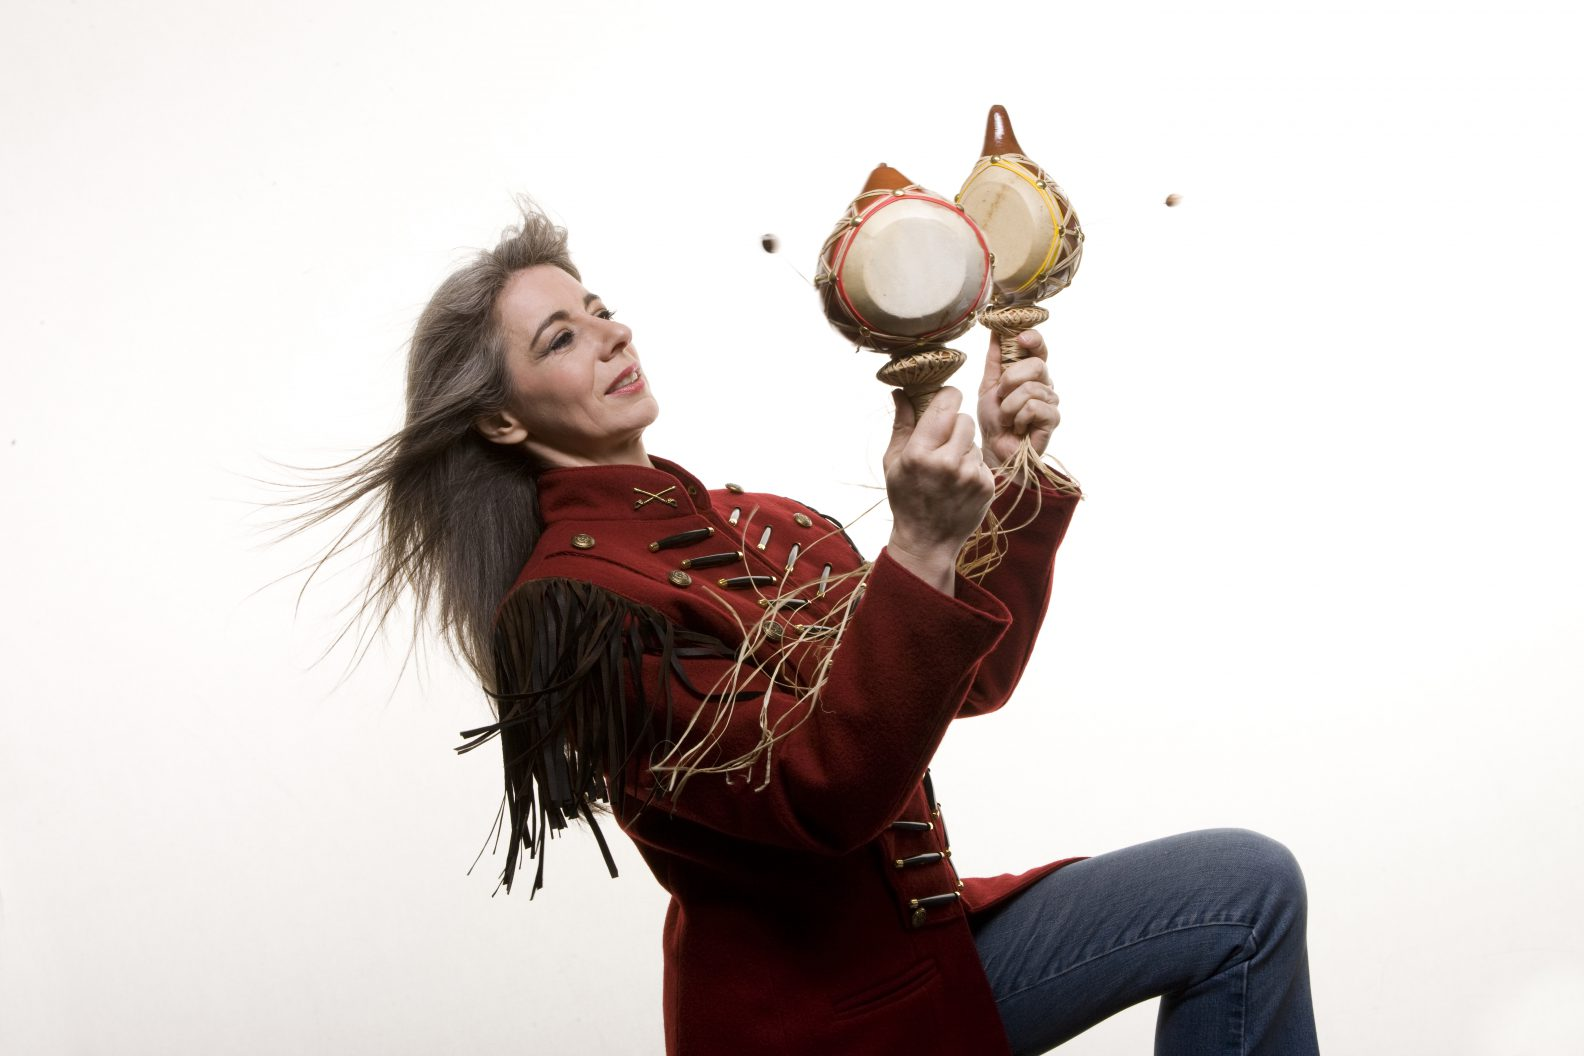 Photograph of Evelyn Glennie playing percussion